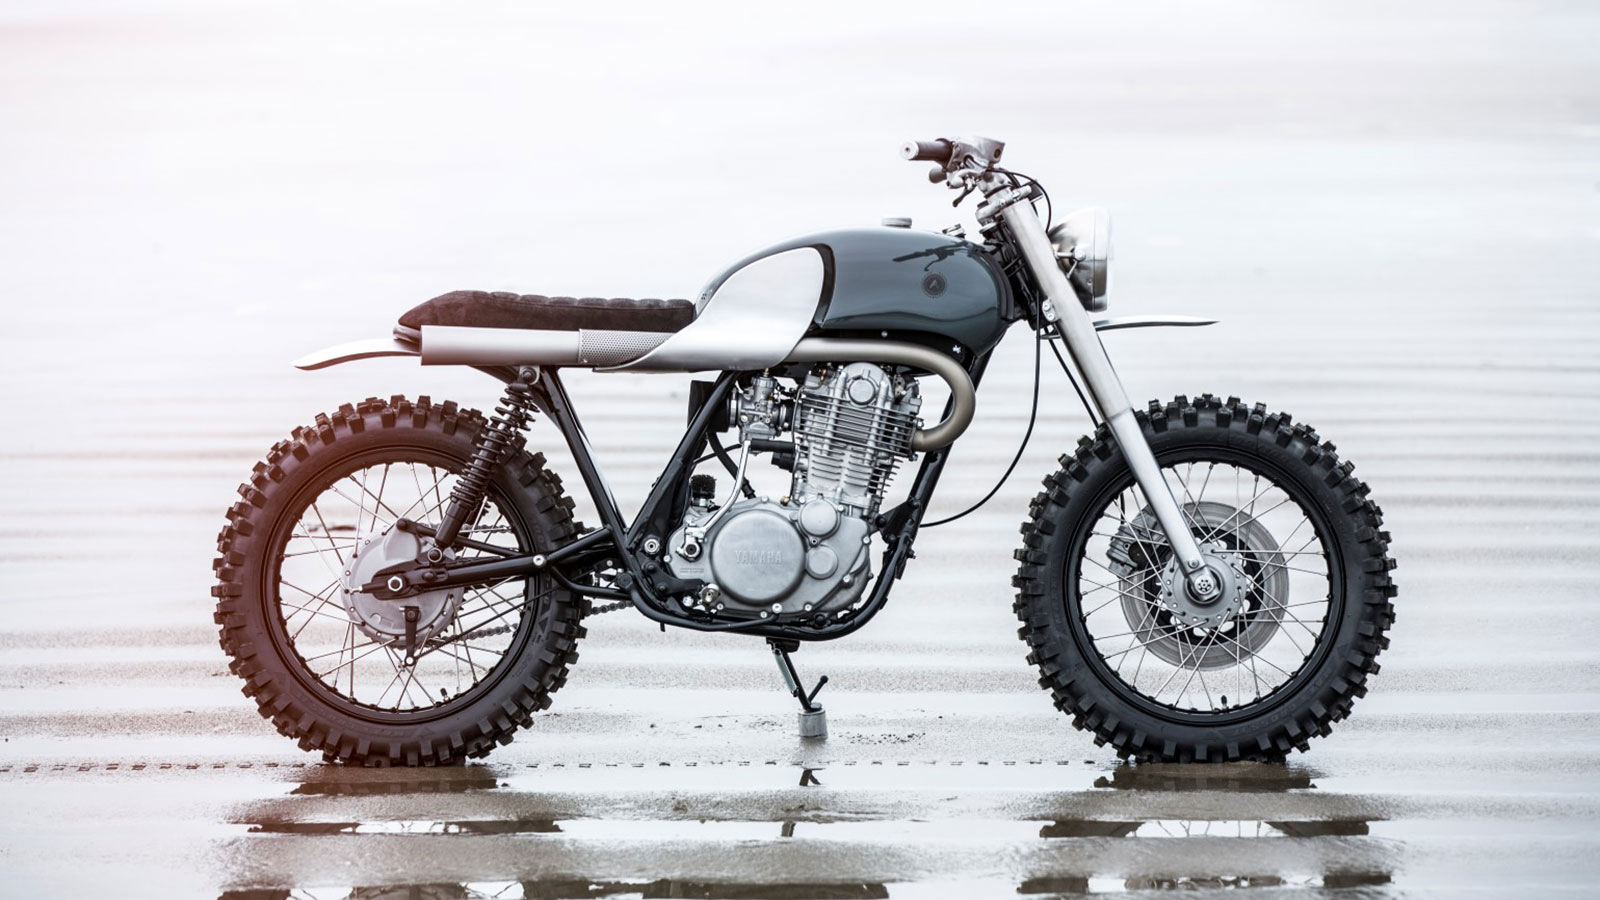 Auto fabrica type 7x scrambler muted for Yamaha motorcycle types